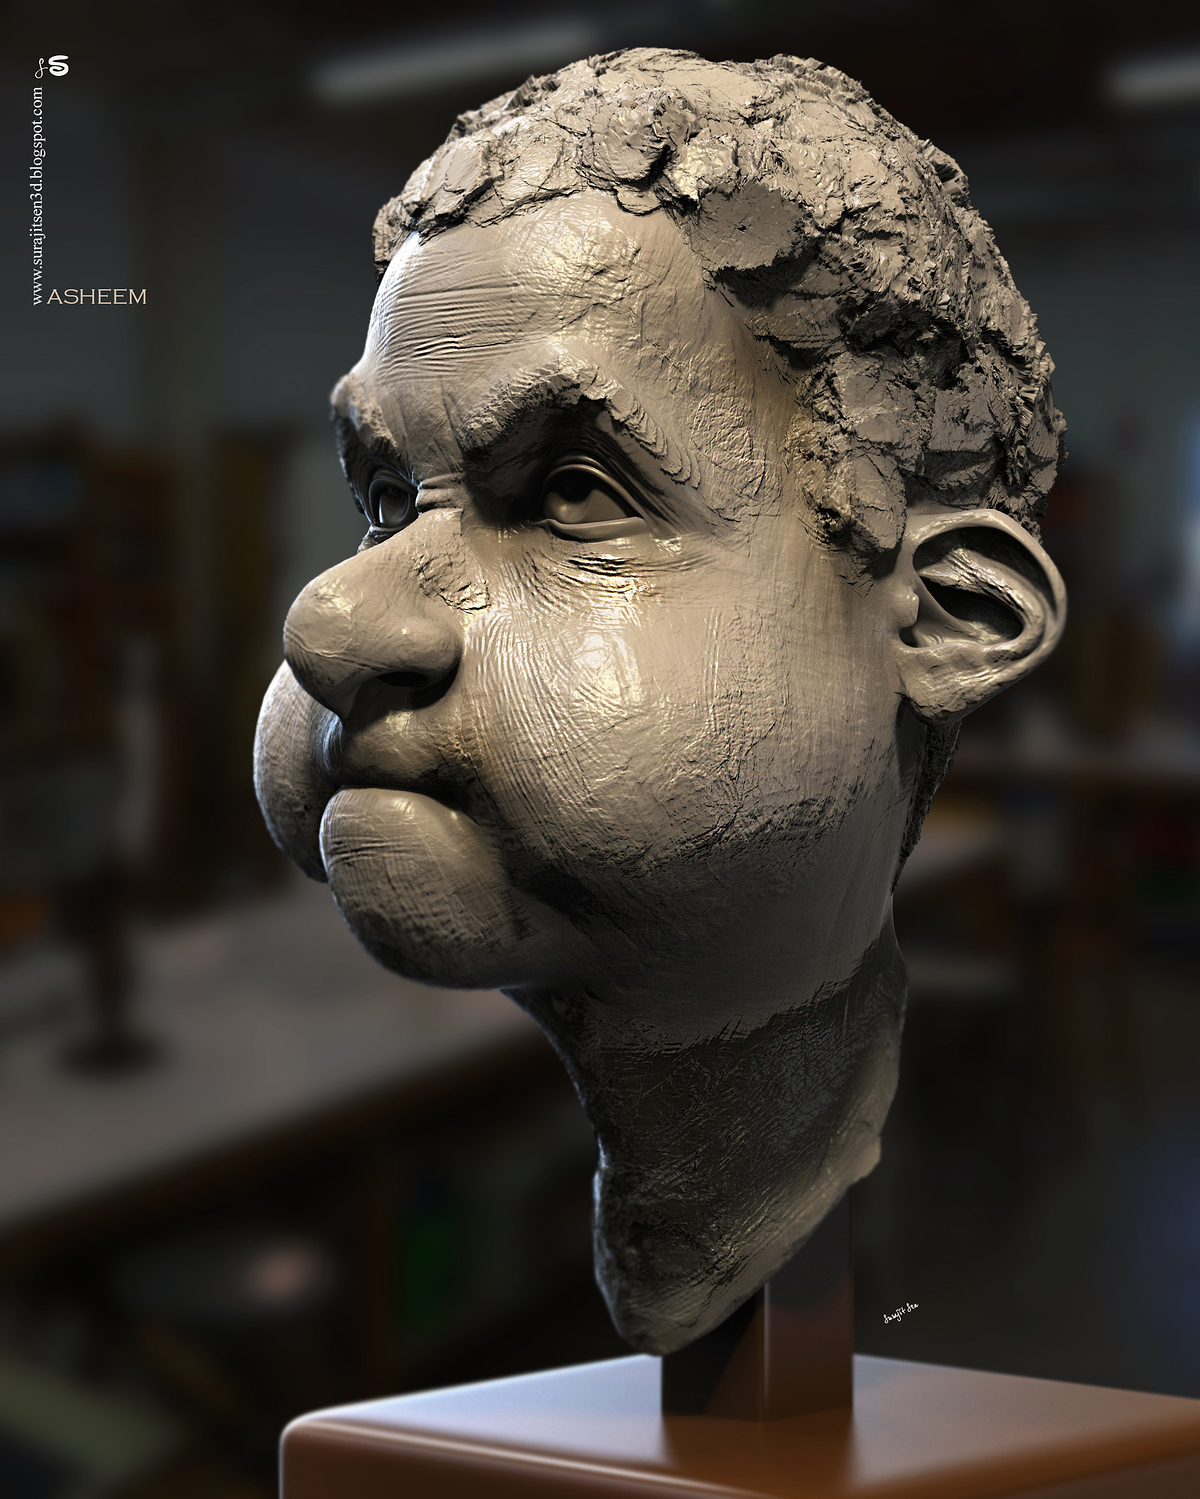 Asheem_Digital_SCulpture_SurajitSen_Aug2020A